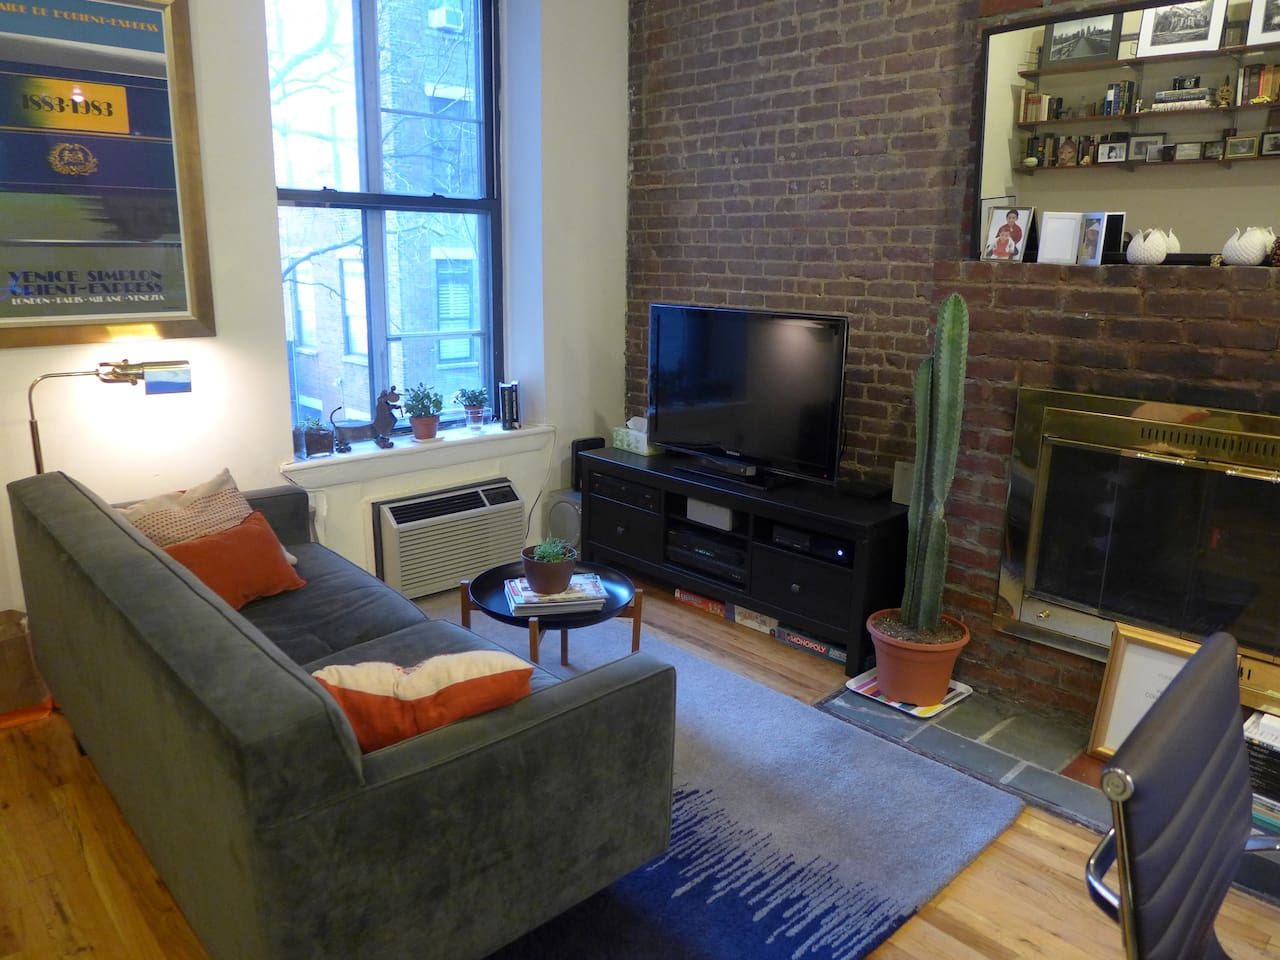 Cozy living room with exposed brick wall and oversize window